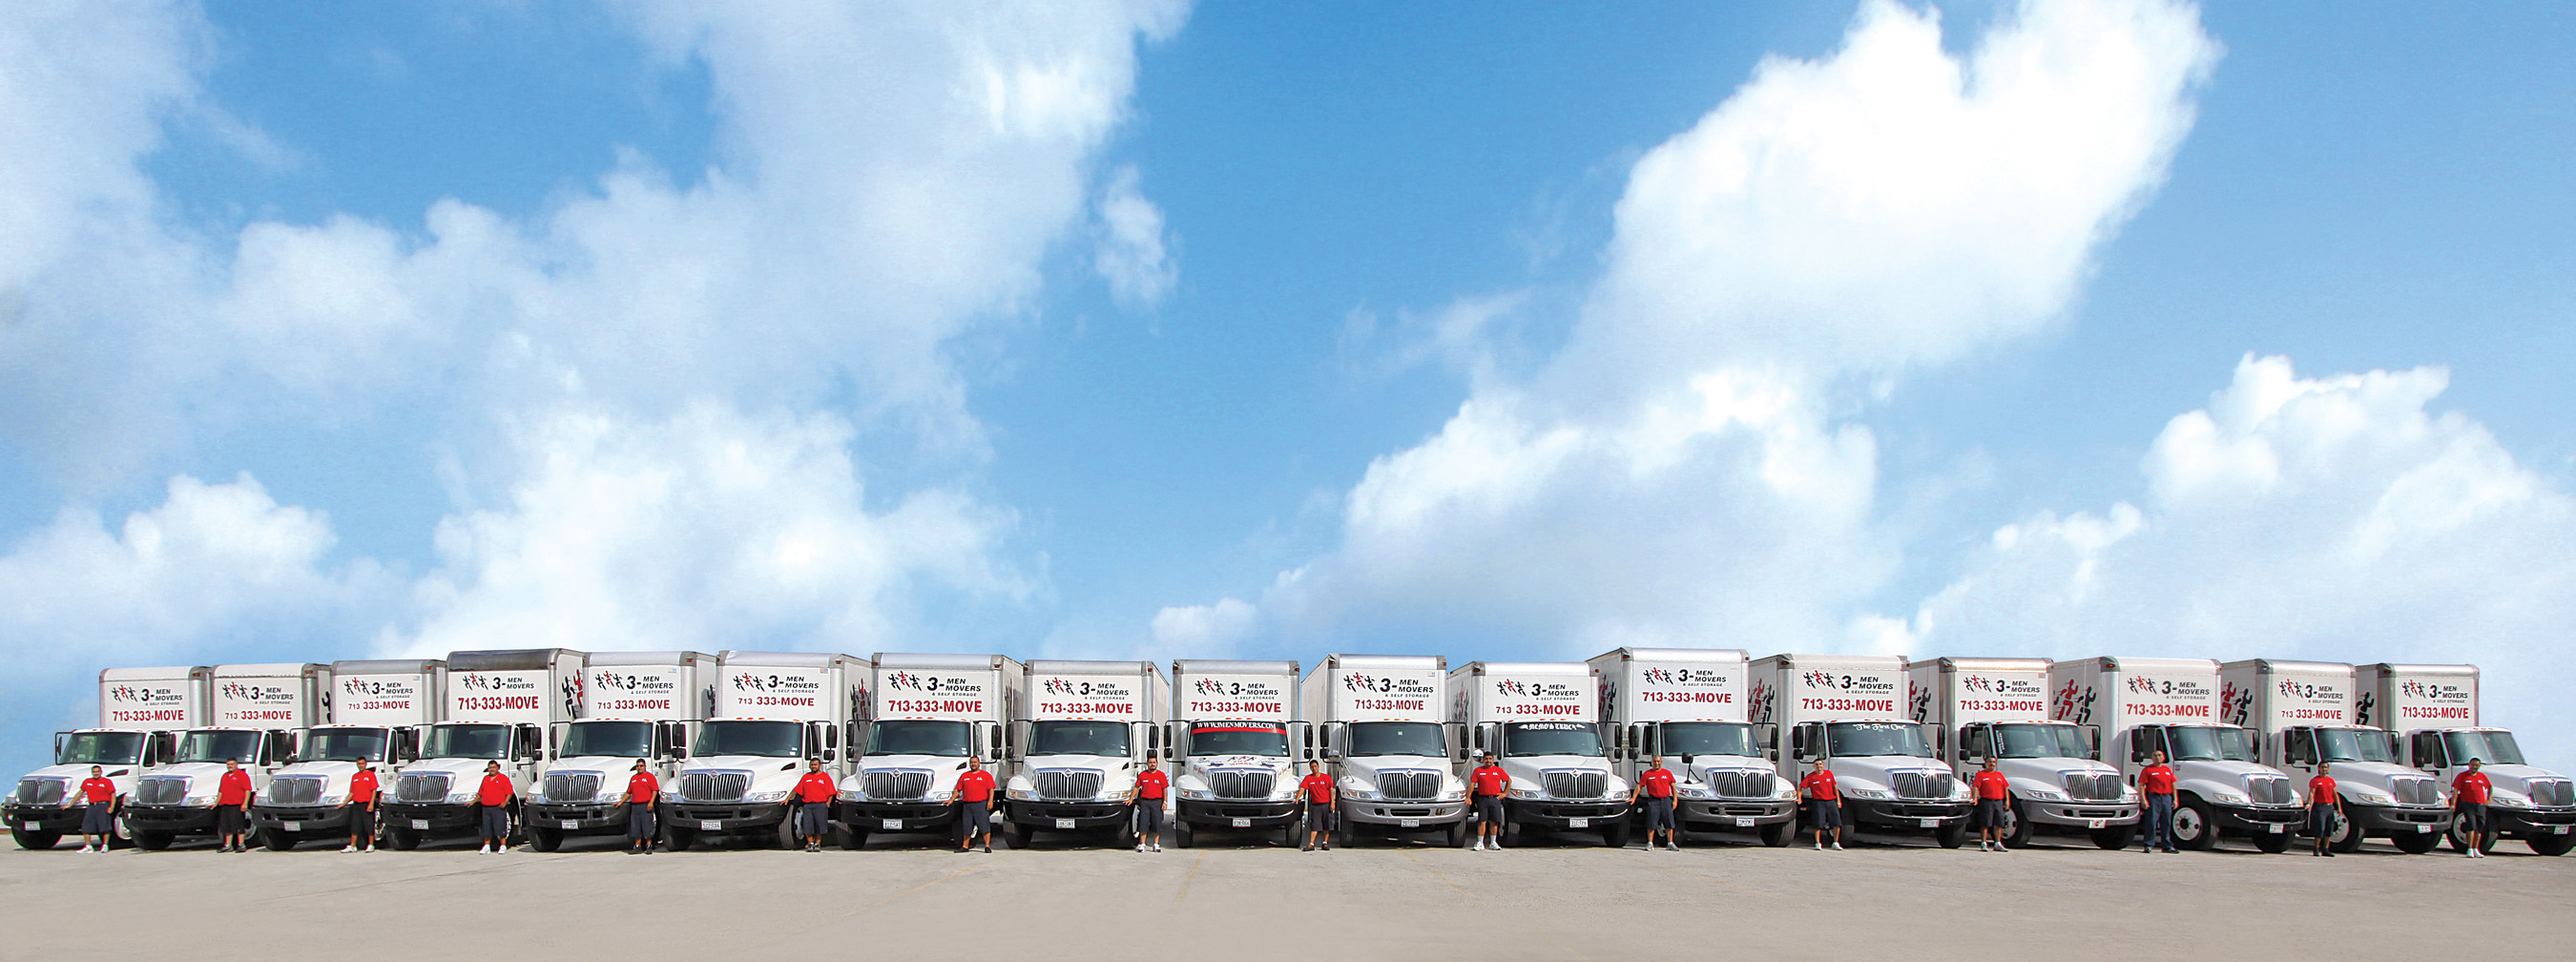 From one Frito Lay truck in 1985 to a fleet of over 80 today.